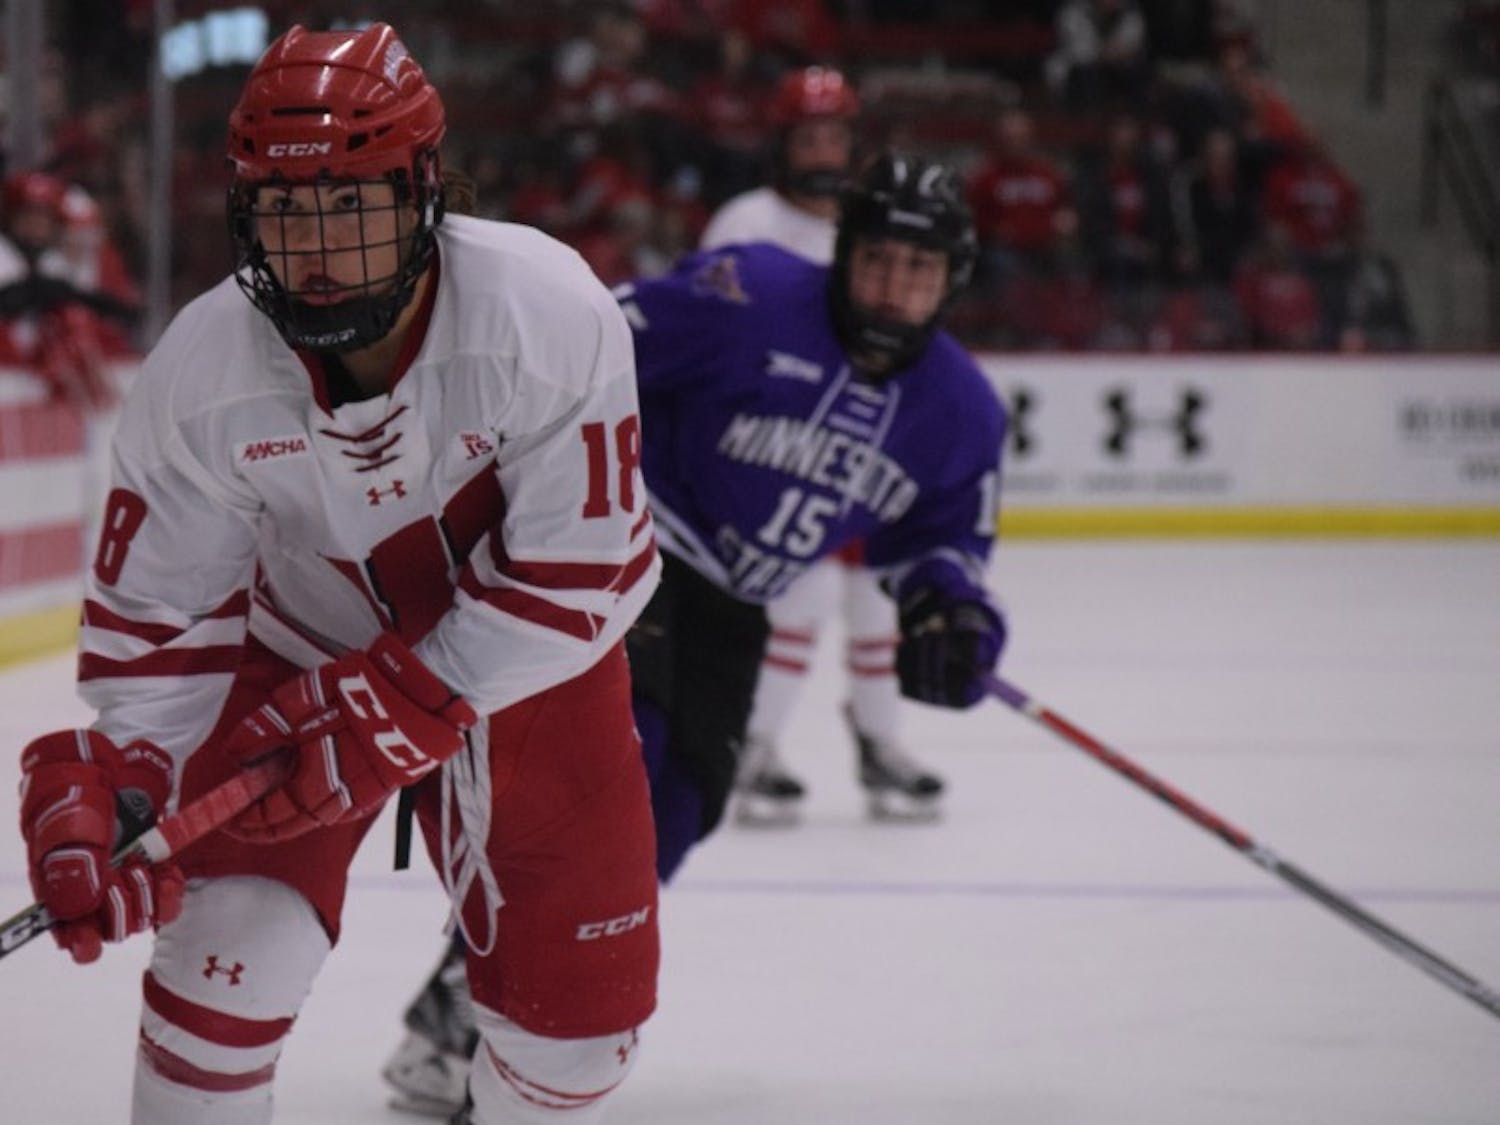 Abby Roque and the Badgers face Minnesota in the first round of the NCAA Tournament. UW lost to the Gophers 3-1 last week in the WCHA Tournament championship.